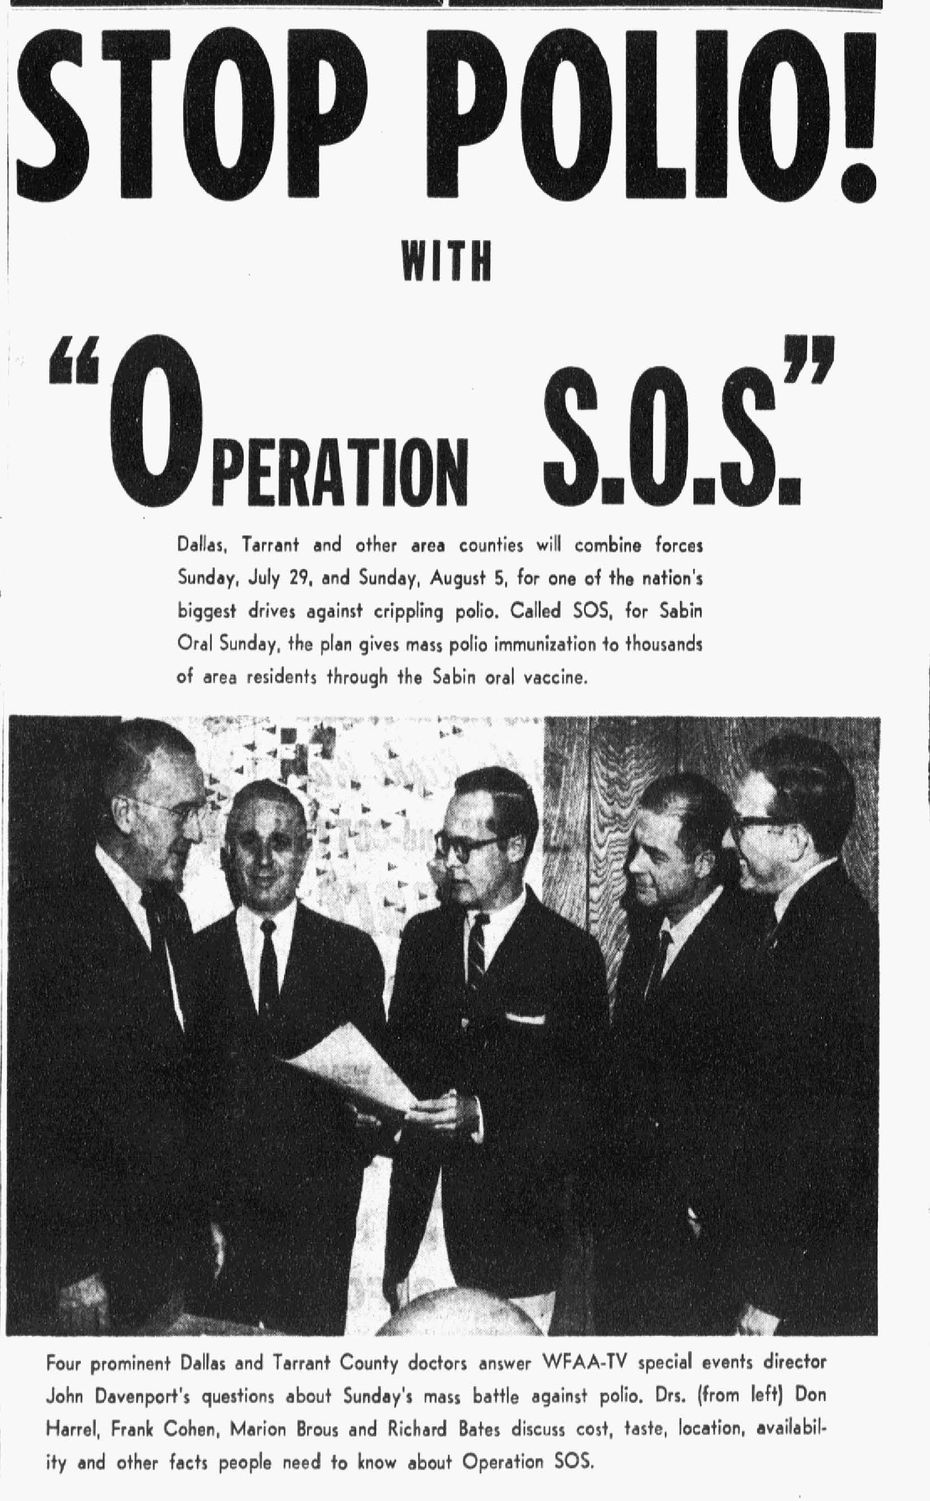 Advertisement to stop polio published on July 25, 1962.